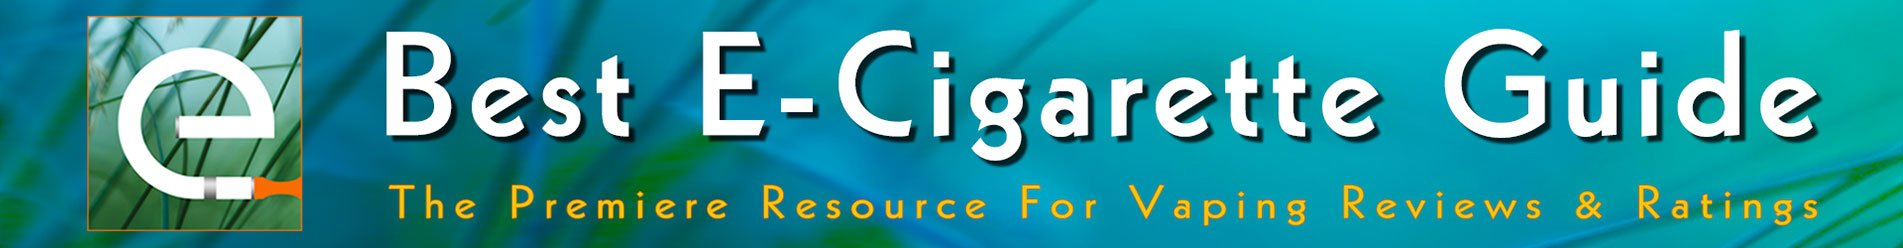 Best E-Cigarette Guide Header Logo